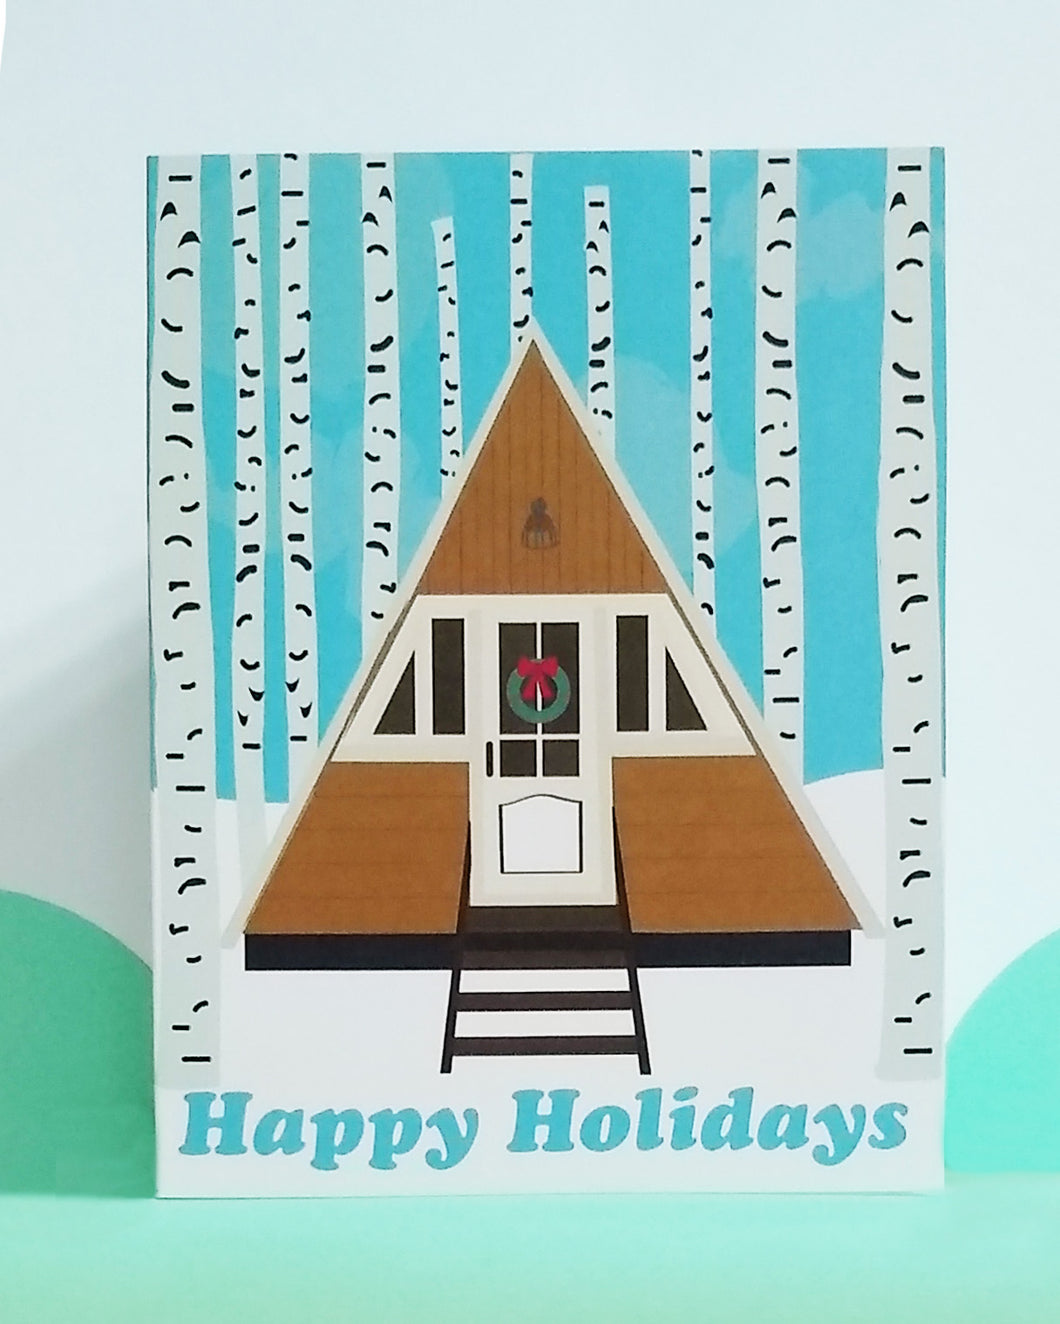 Birchwood Forest Cabin Holiday Card